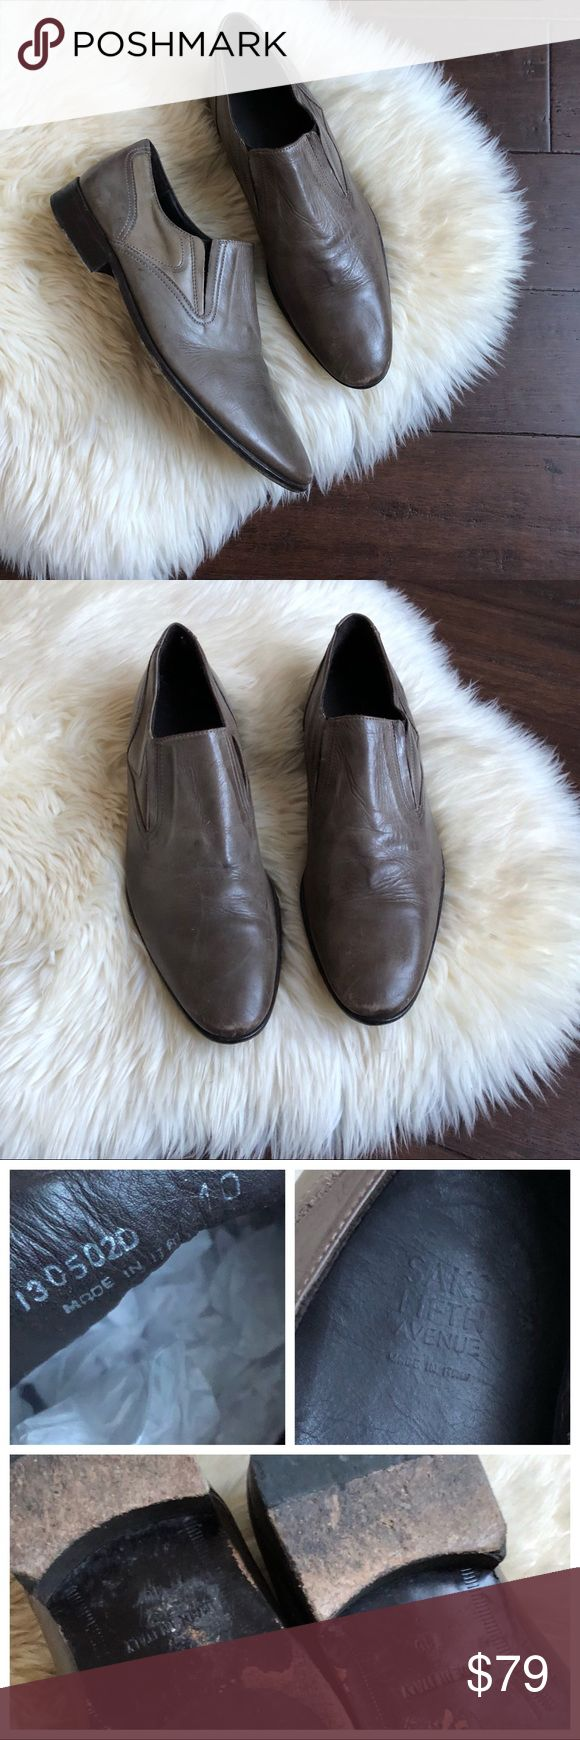 Saks Fifth Avenue Italian Leather Slip On Loafer Mens Saks Fifth Avenue Italian Leather Slip On Loafer   Brand - Saks Fifth Avenue Size - 10 Color - Taupe Light Brownish Gray Leather  Good condition, light scratches & wear on bottom. Saks Fifth Avenue Shoes Loafers & Slip-Ons